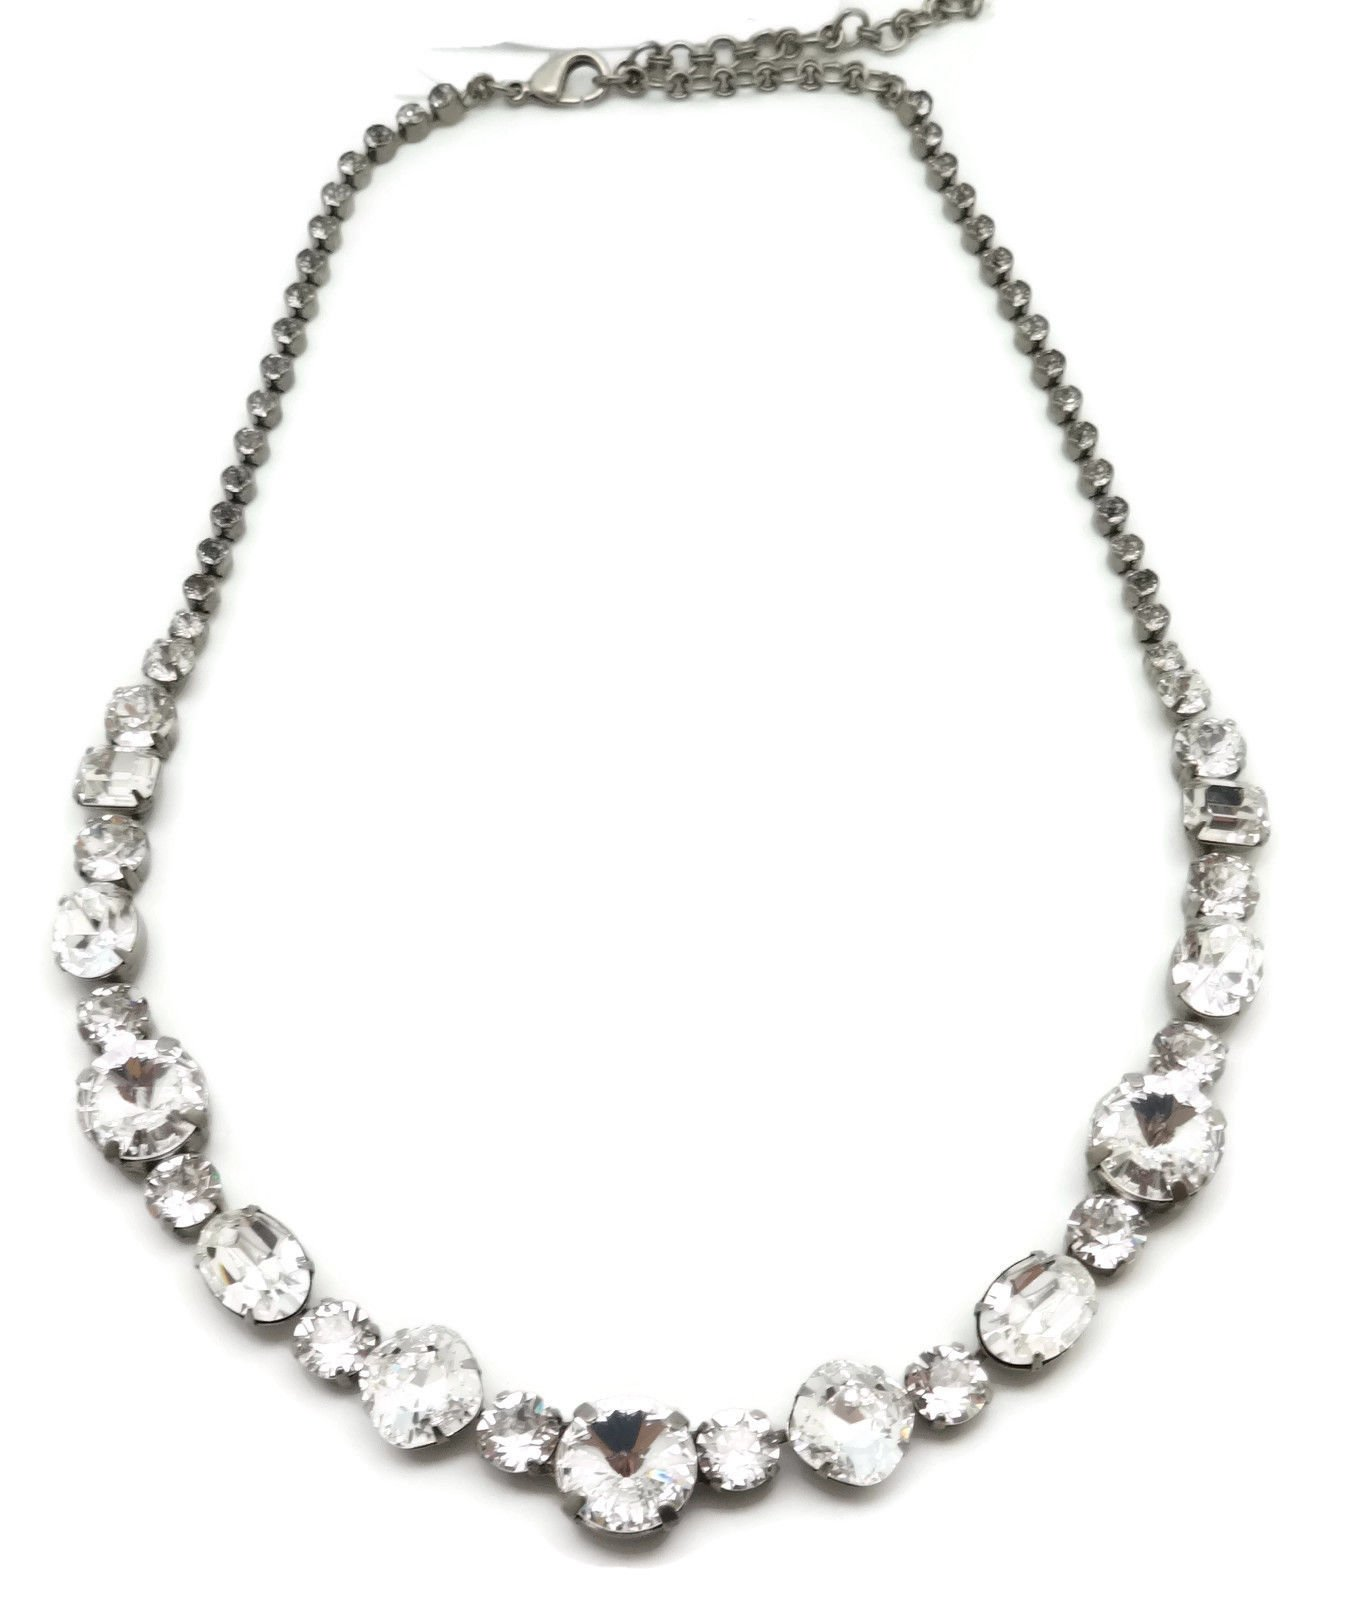 Sorrelli Round Cushion & Oval Cut Clear Crystal Collection Silvertone Necklace